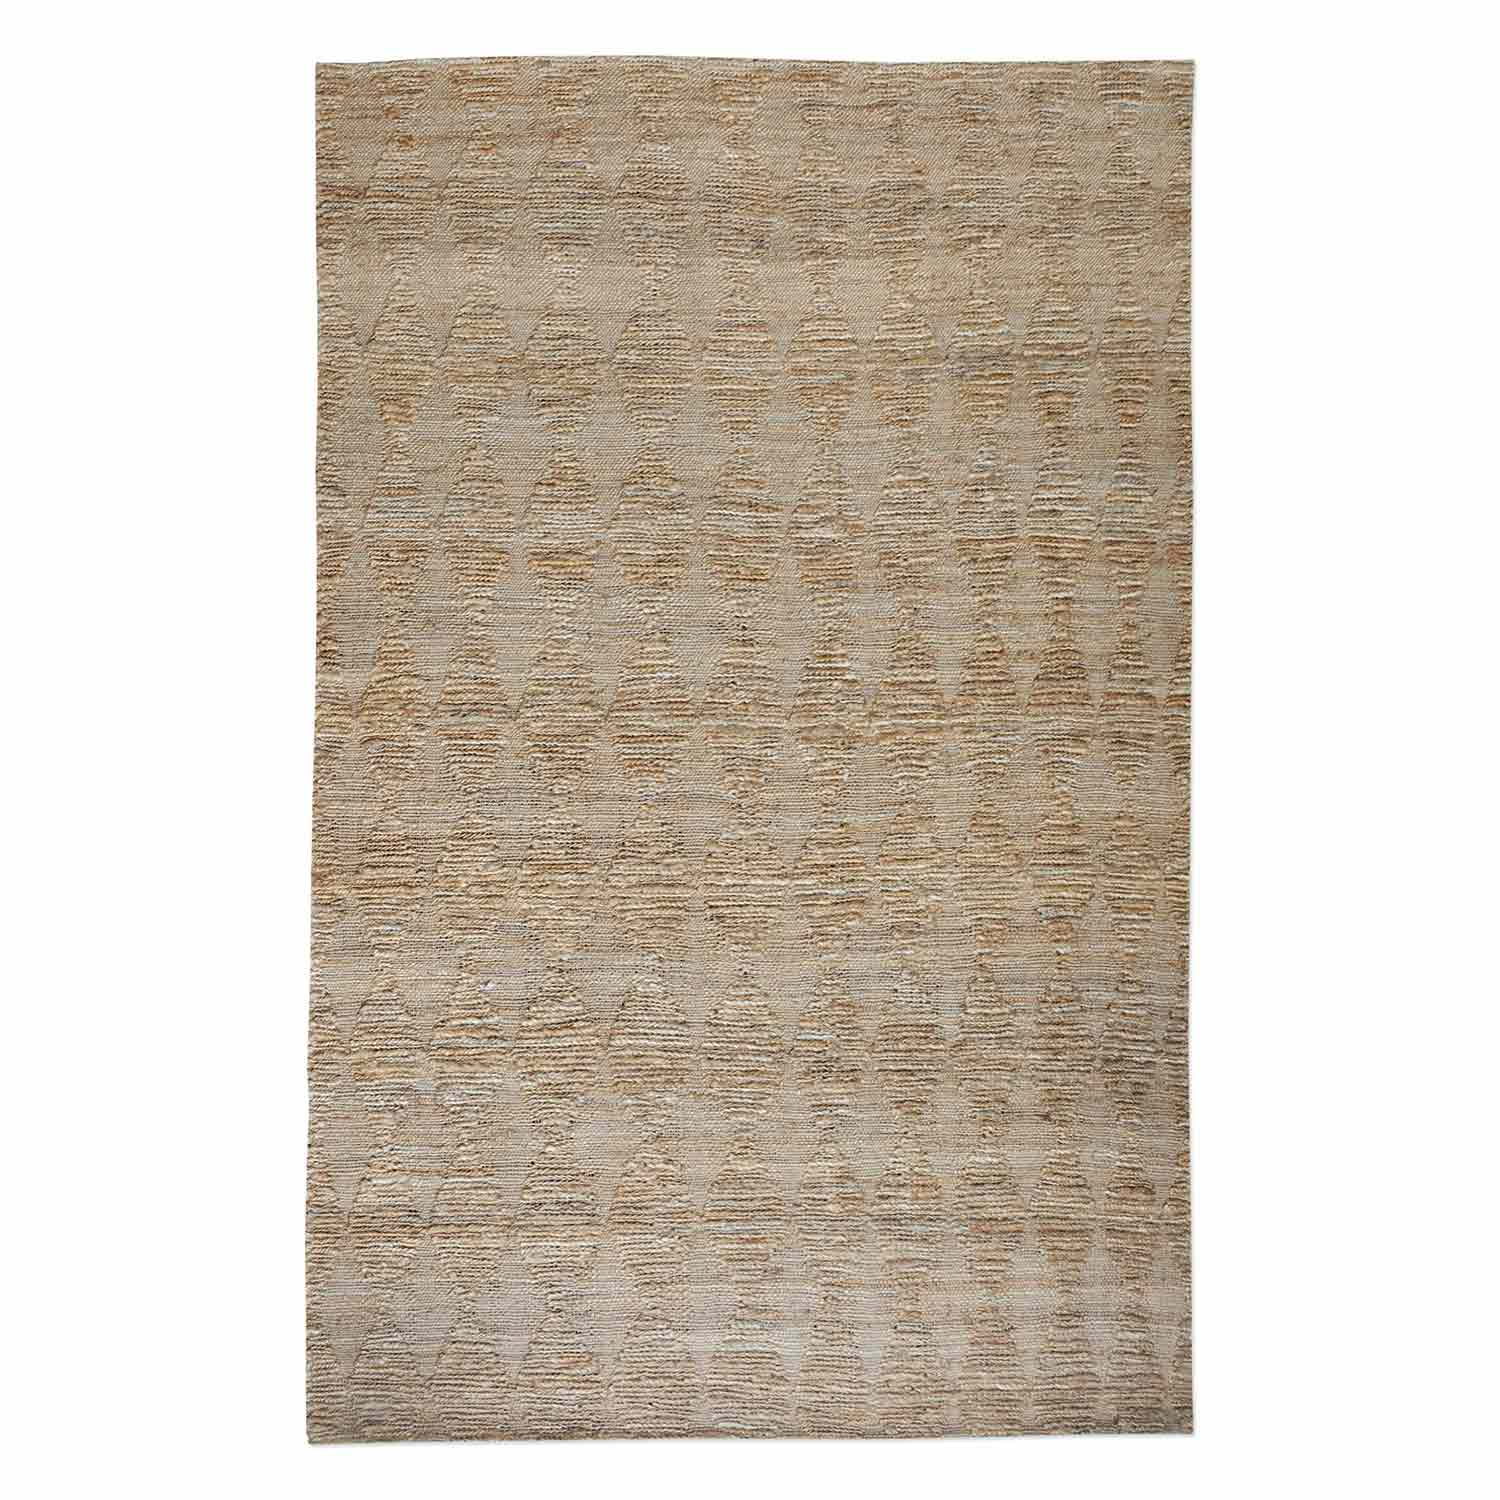 Uttermost Burma 9 x 12 Rug - Natural